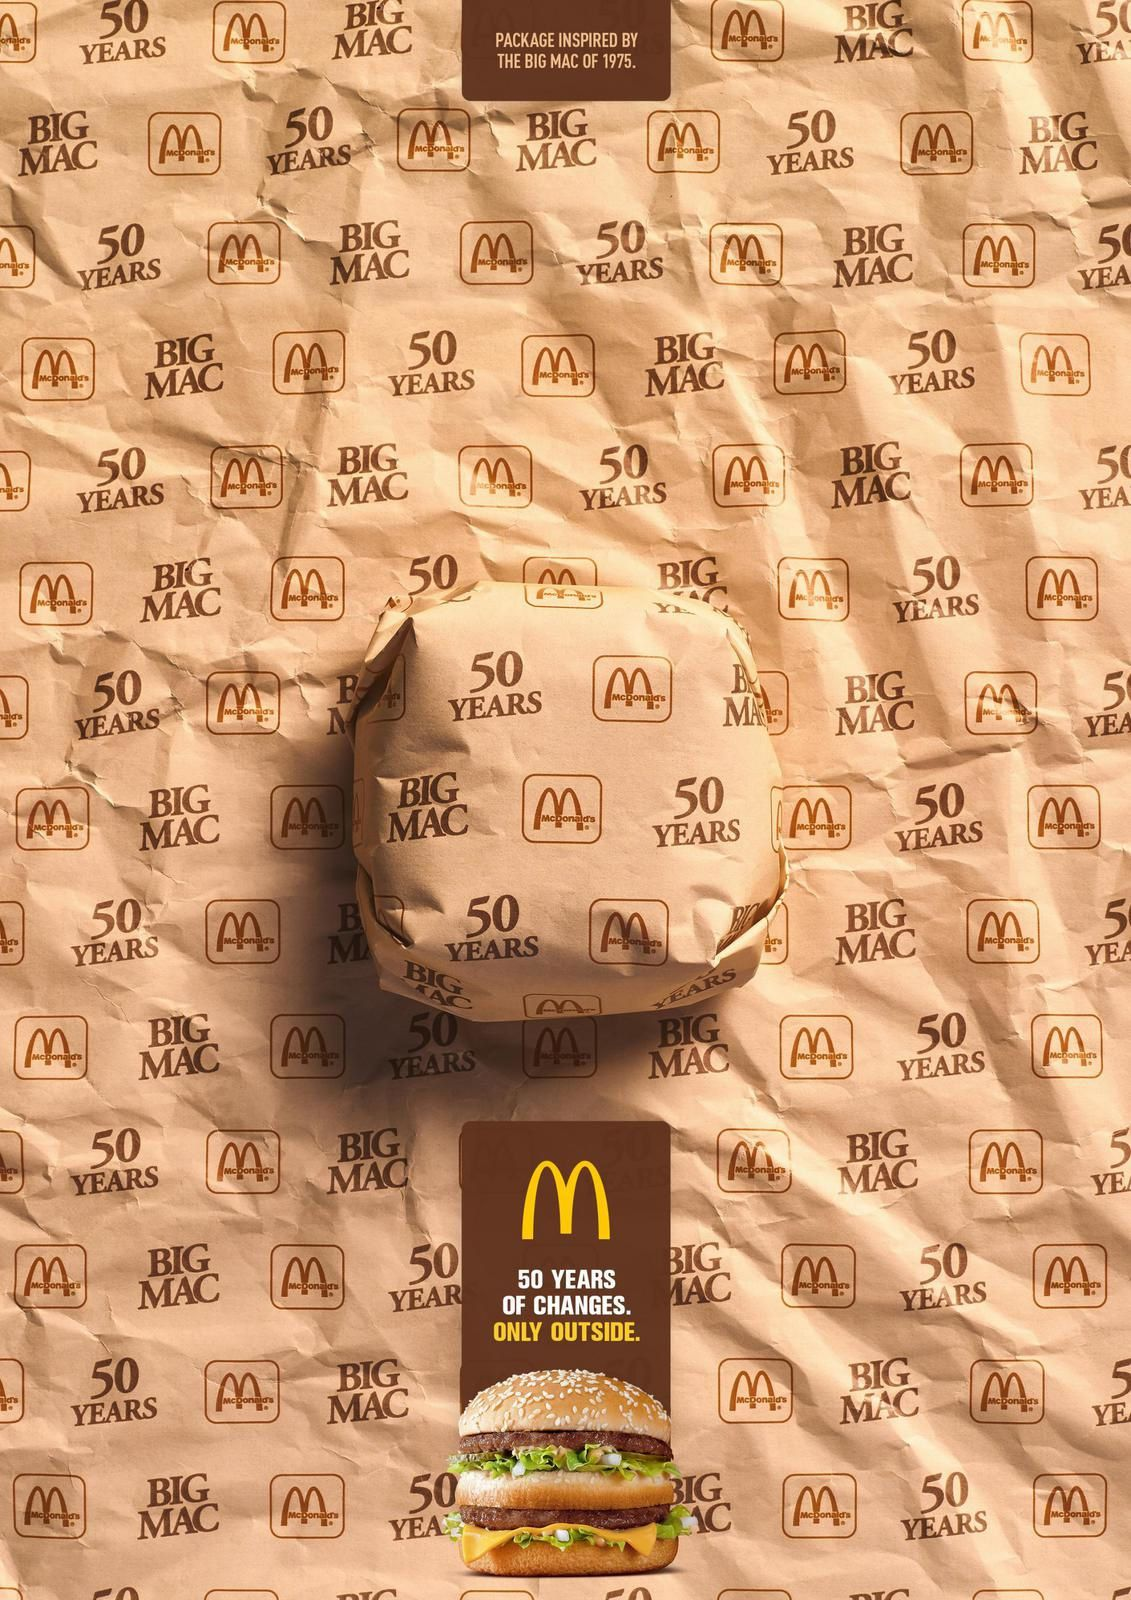 """Big Mac - Packed in History - 1975 I McDonald's : """"Package inspired by the Big Mac of 1968. 50 years of changes. Only outside"""""""